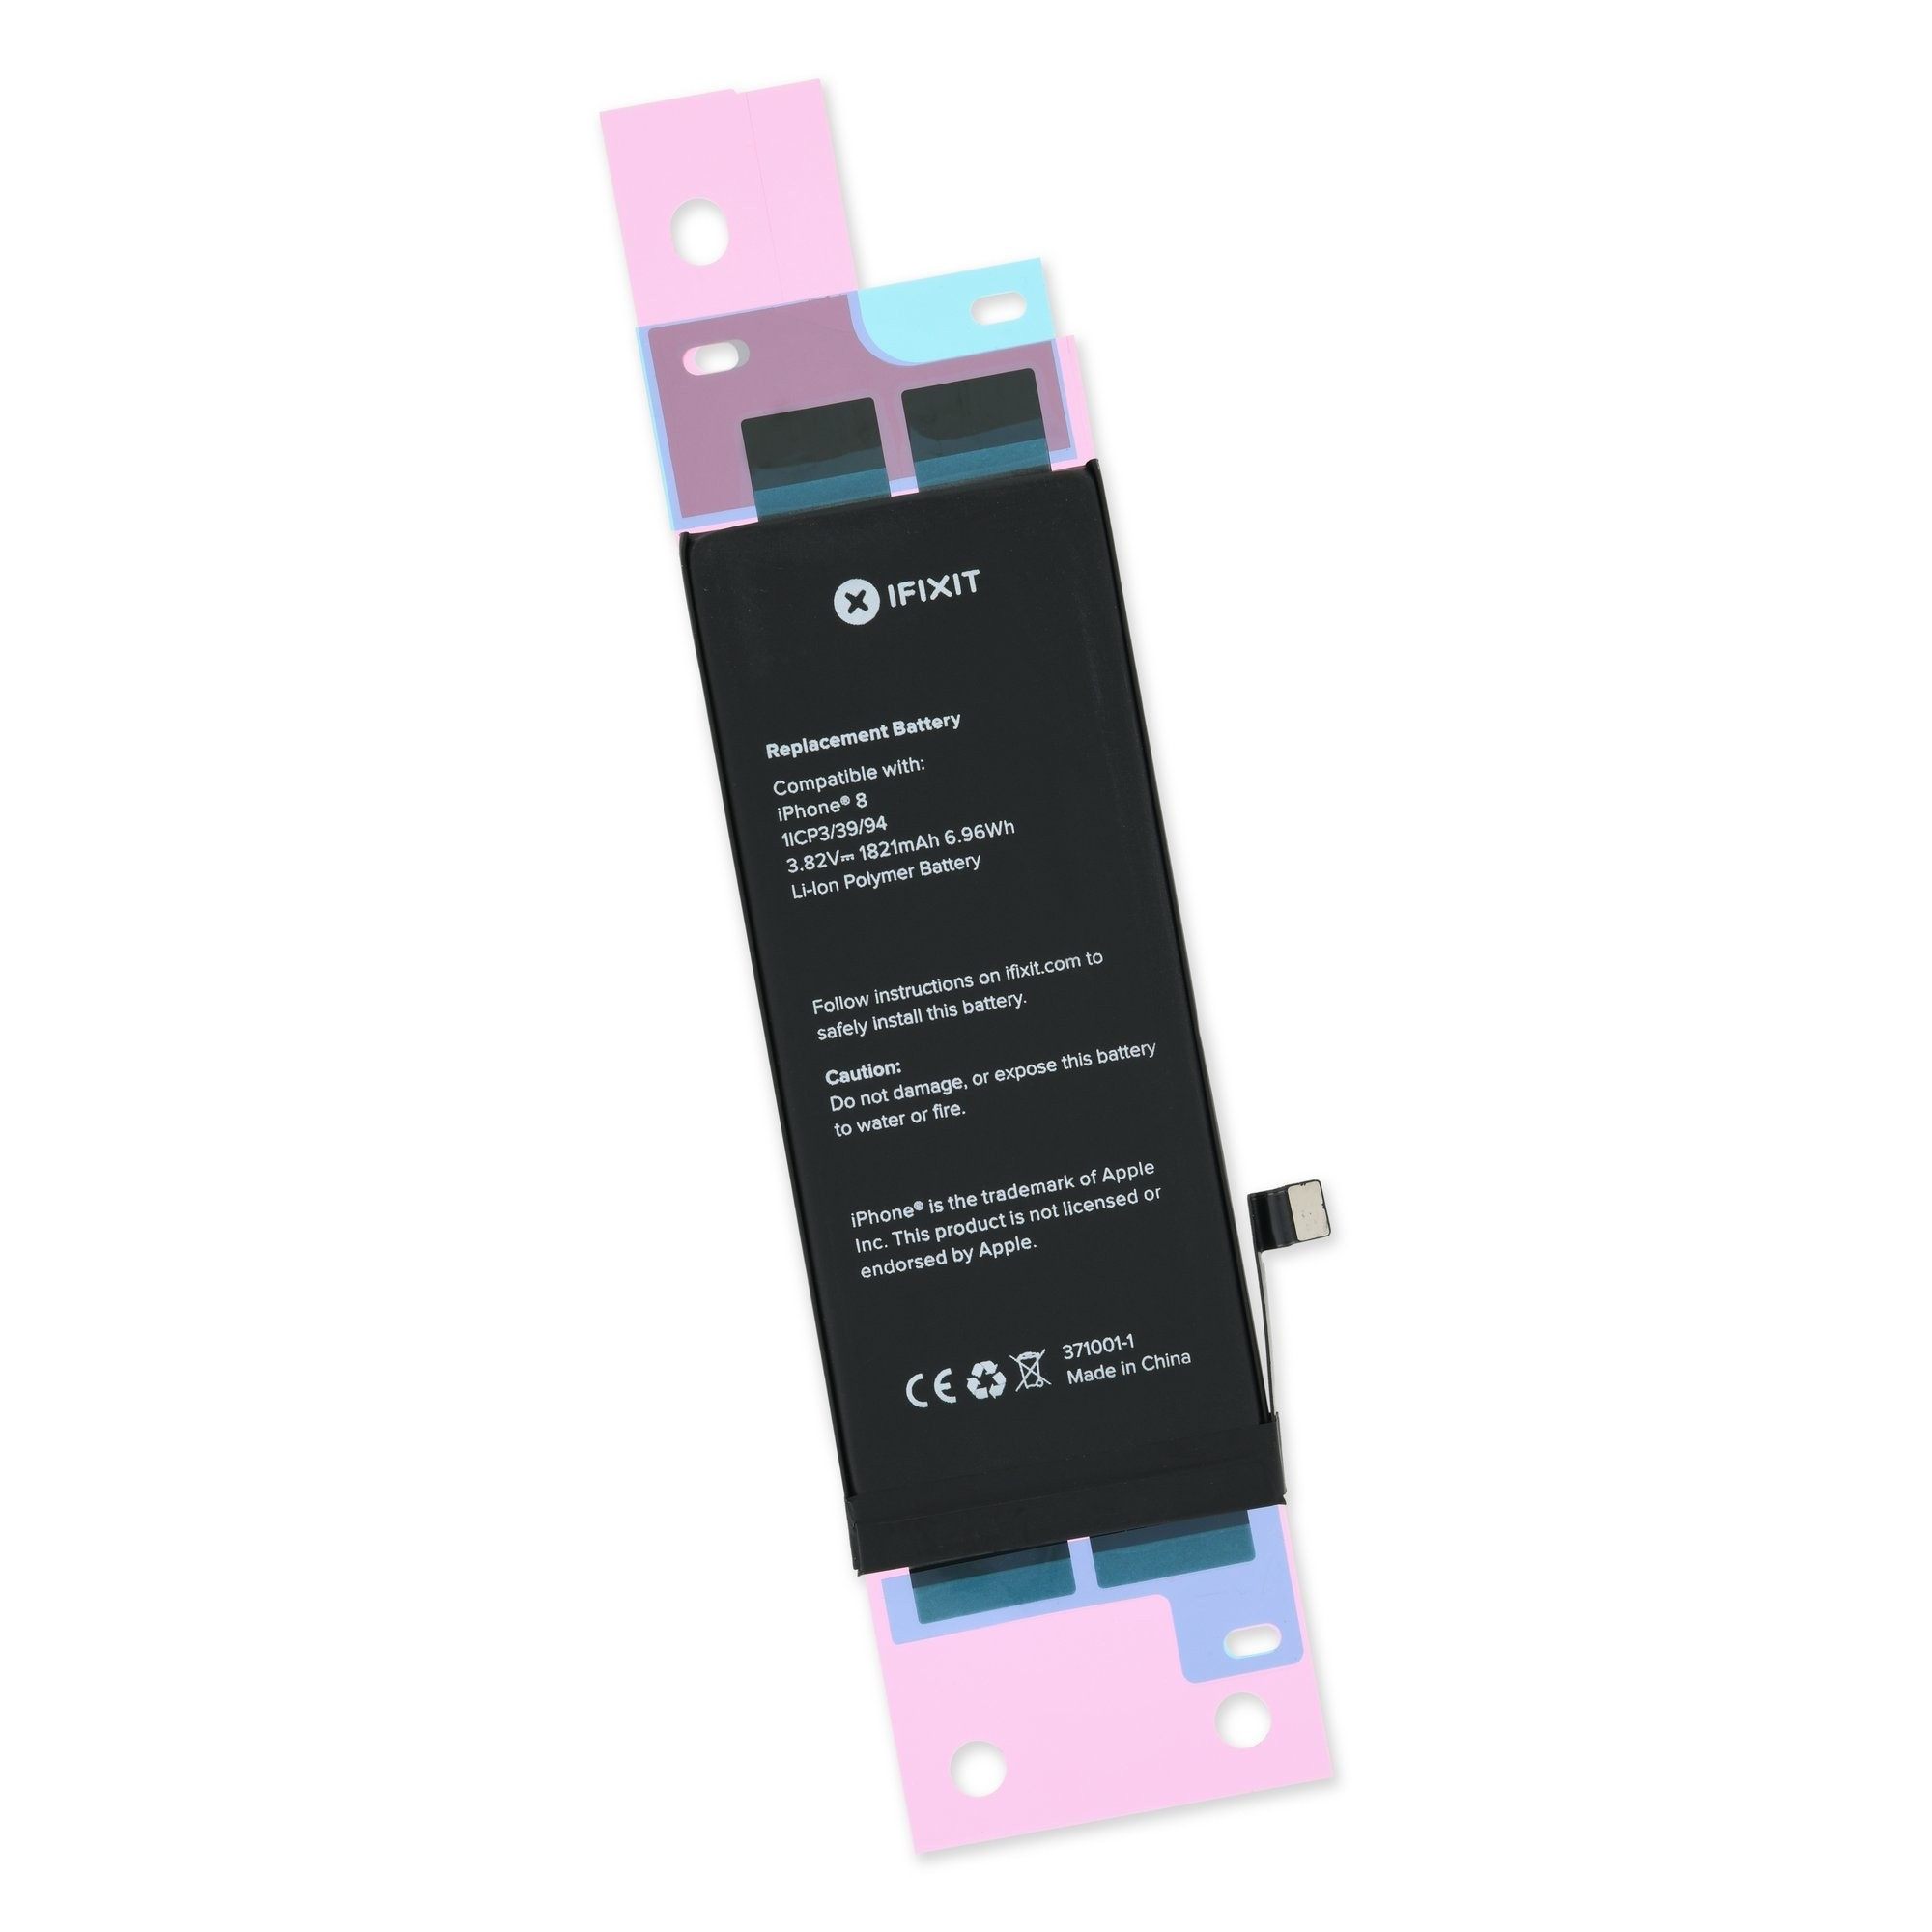 iPhone 8 Replacement Battery - Brand New - Includes Adhesive, I8A-005